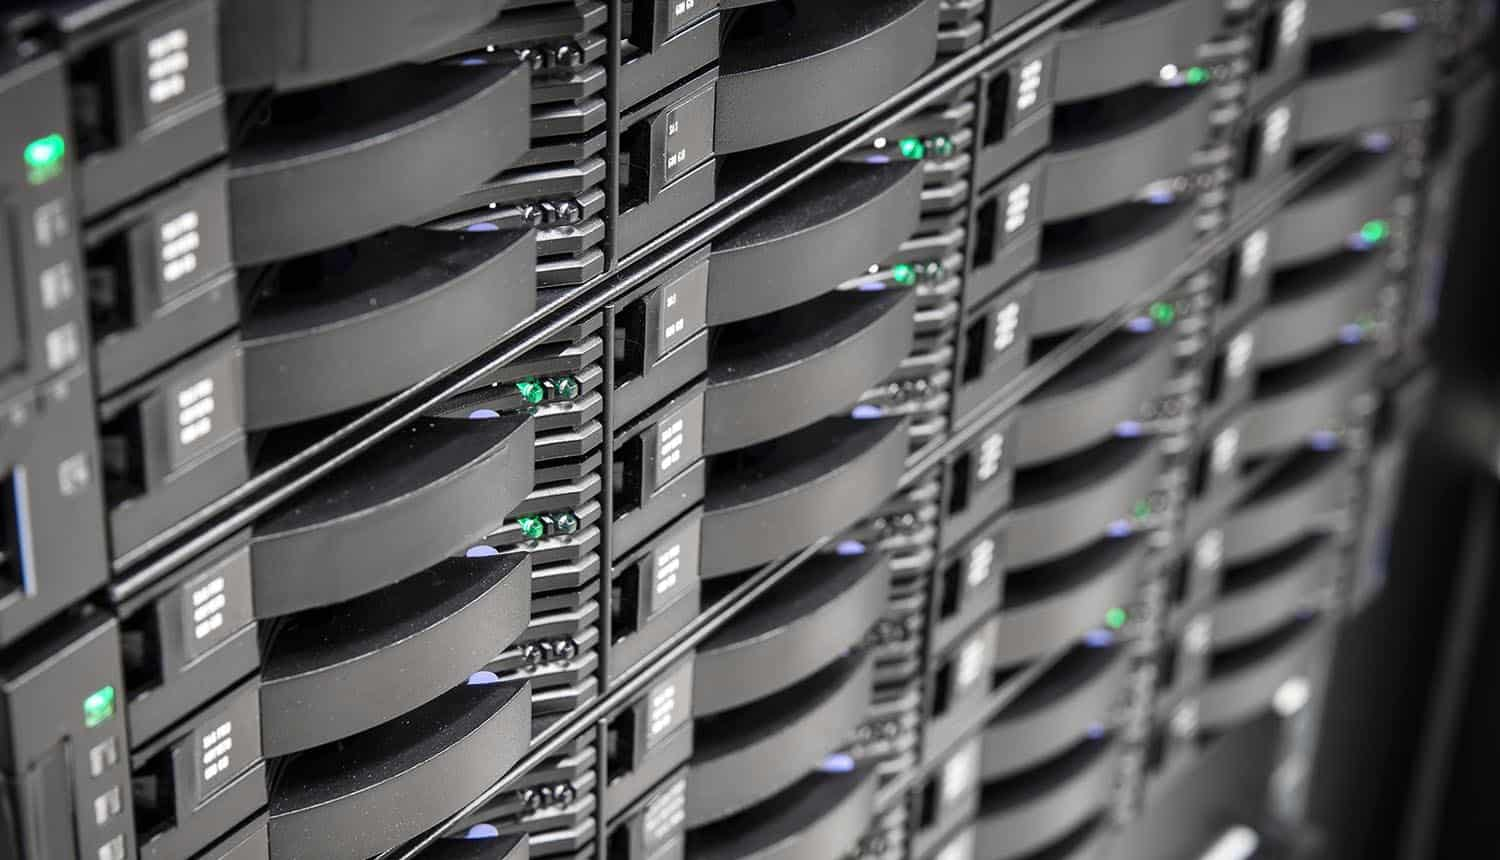 Hard disks in large storage system showing the myth of the enterprise data required to ensure a secured environment